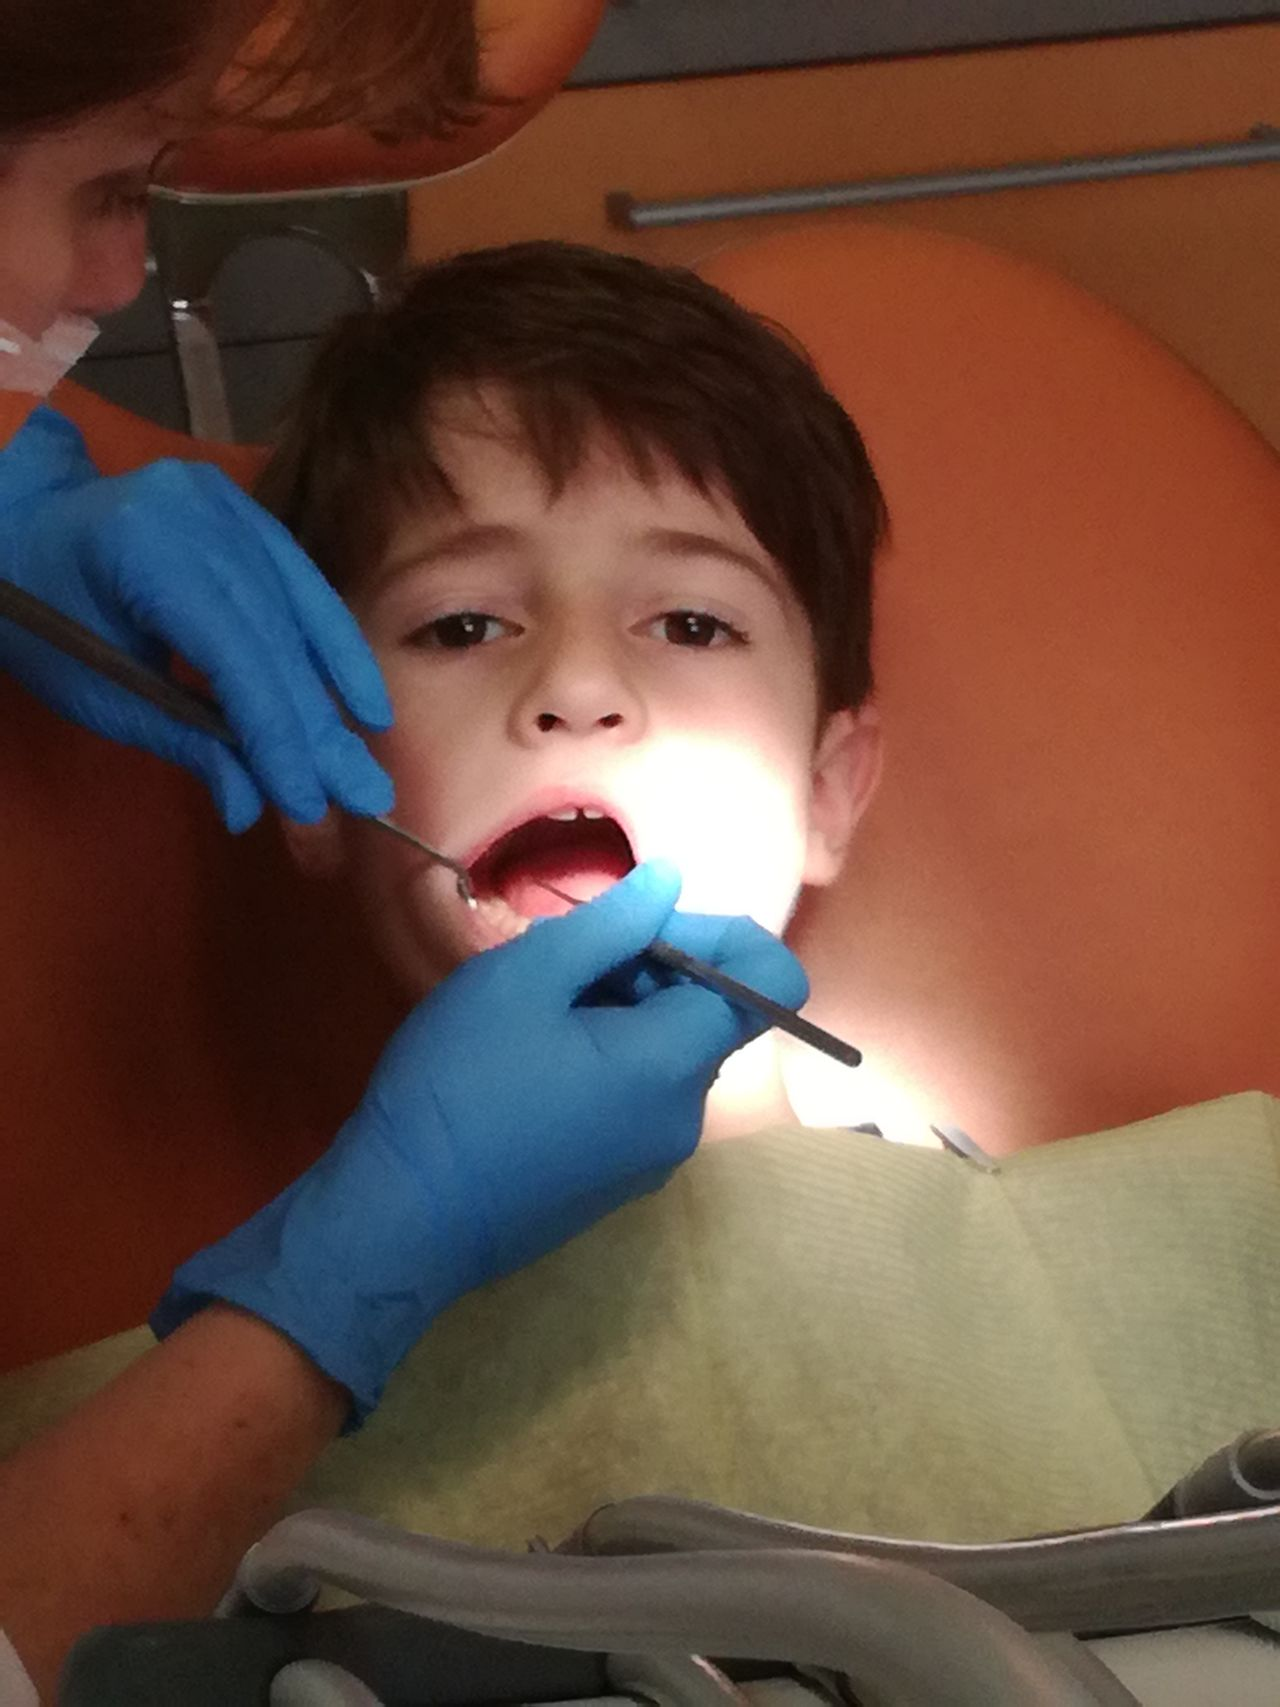 Healthcare And Medicine Child Patient Human Body Part Human Teeth Dentist Dental Health Adult People Injecting Two People Doctor  Son Boys Childhood Occupation Medical Exam Surgical Glove Nurse